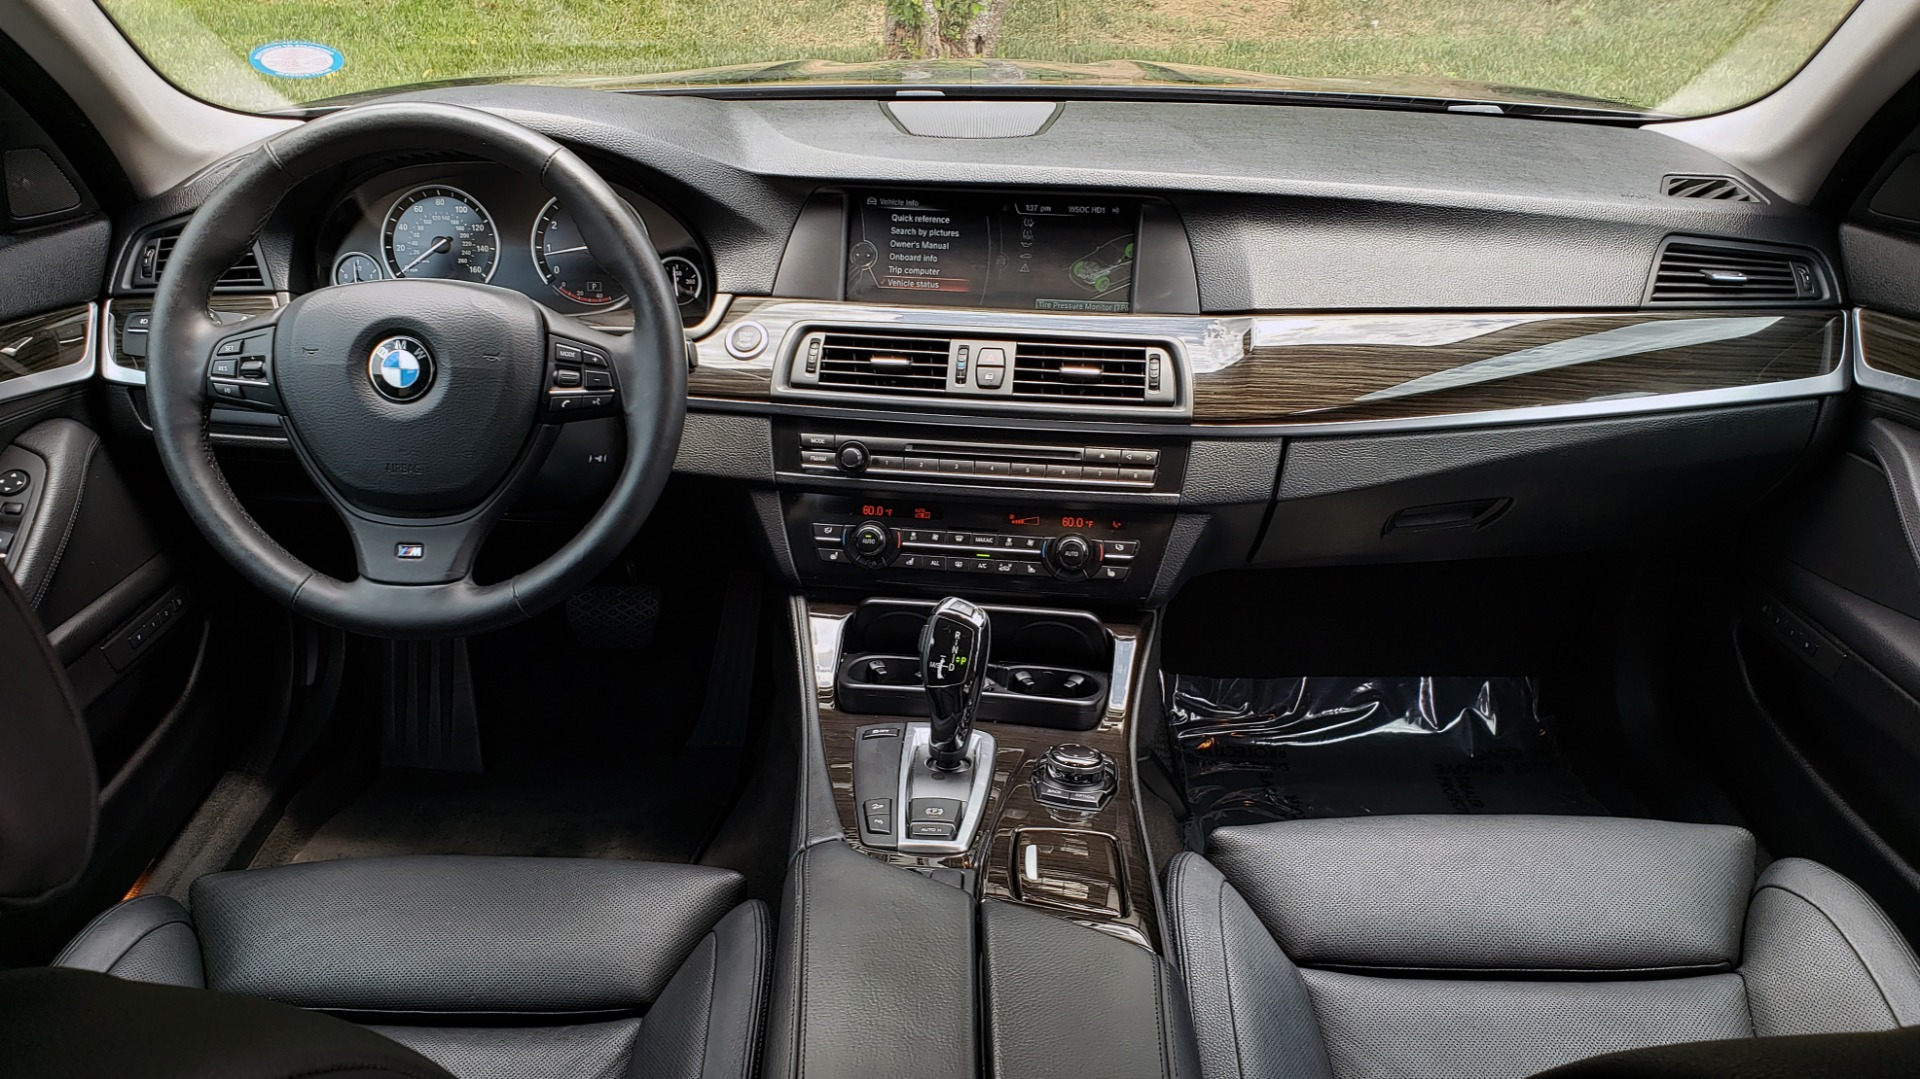 Used 2013 BMW 5 SERIES 550I XDRIVE LUX PKG / EXEC / COLD WTHR / NAV / SUNROOF / REARVIEW for sale Sold at Formula Imports in Charlotte NC 28227 70